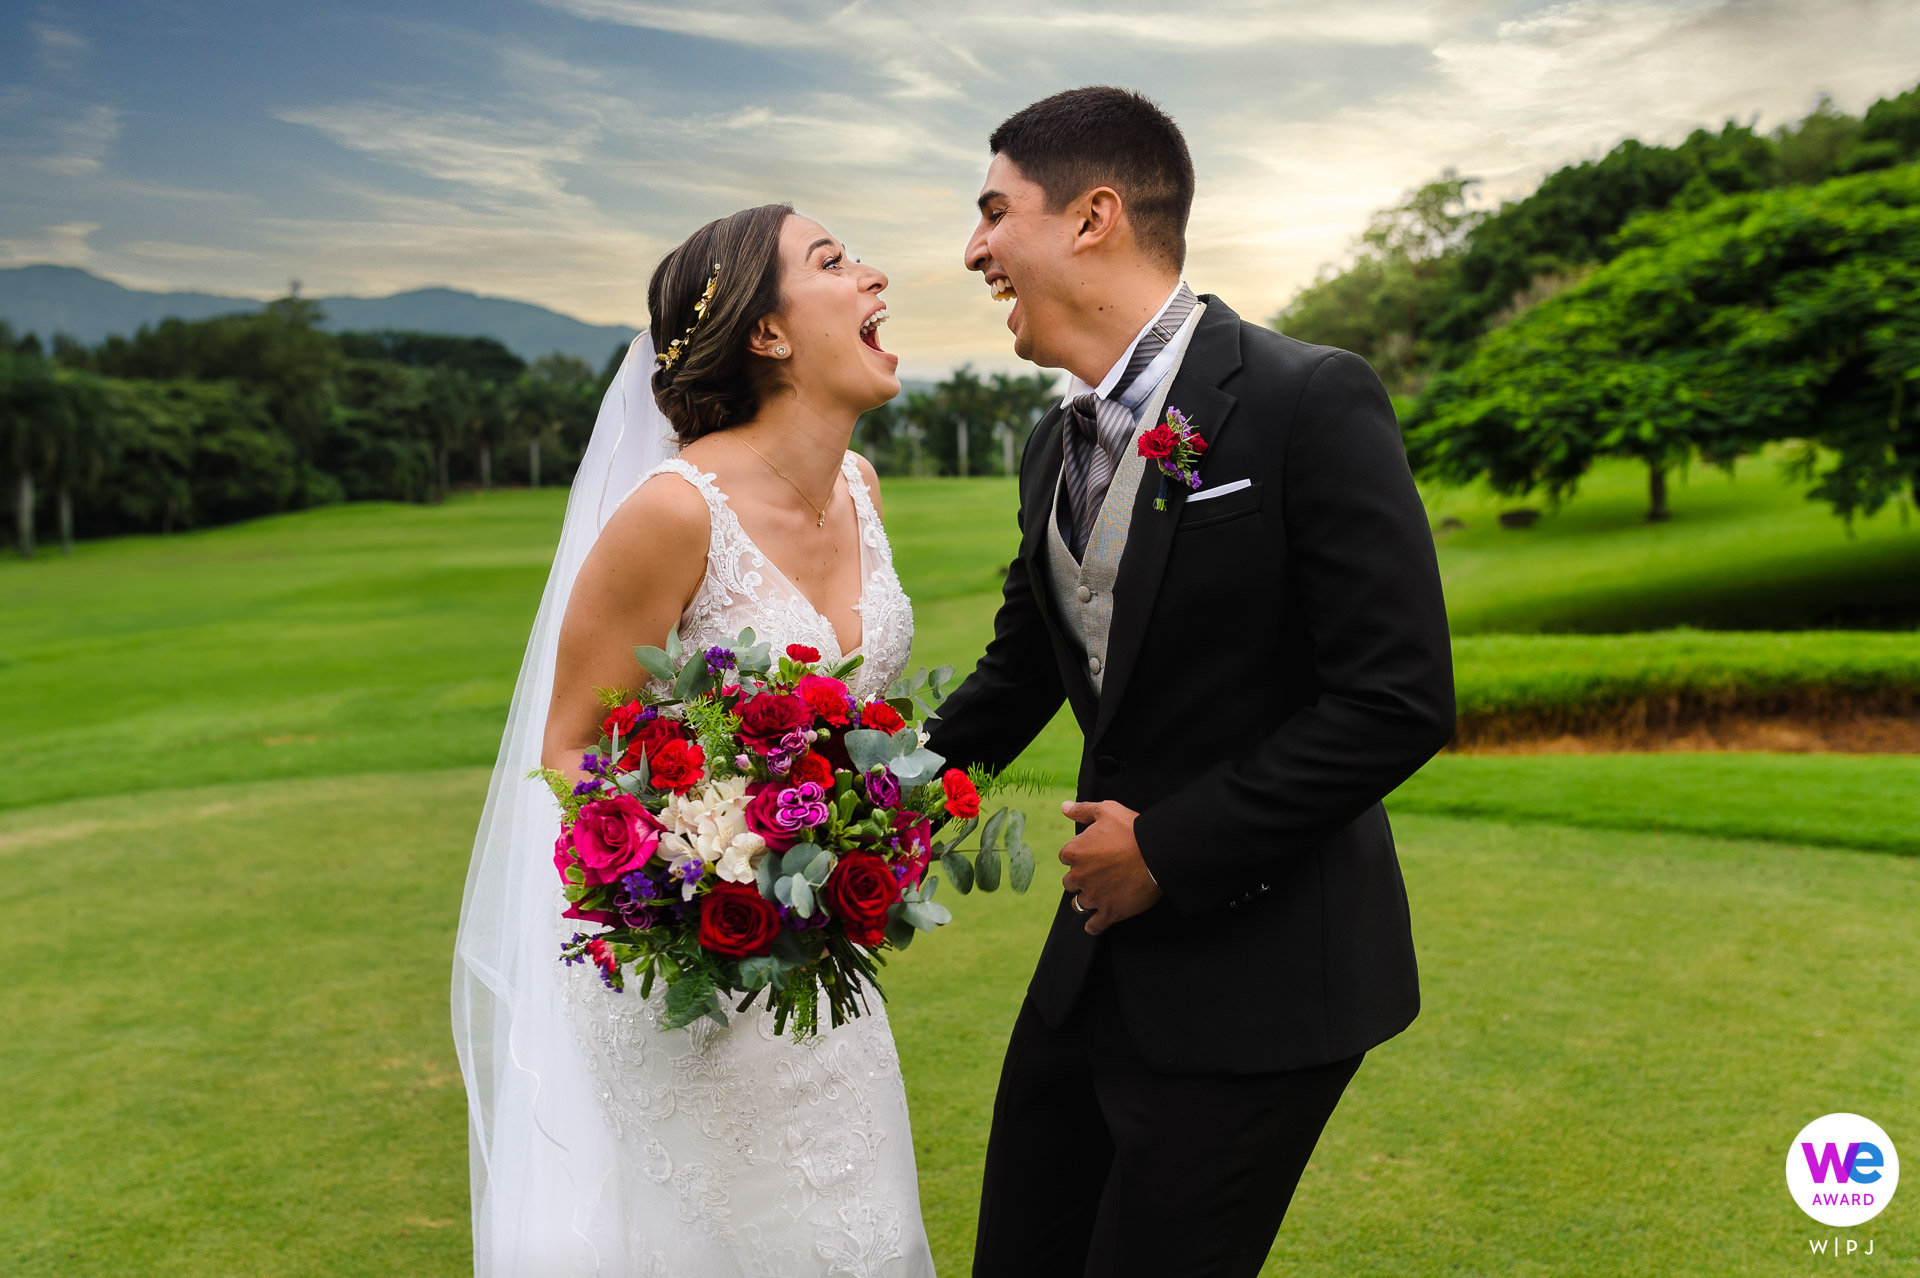 Destination Wedding Portrait Photographer | The couple is having a great time together during their portrait session